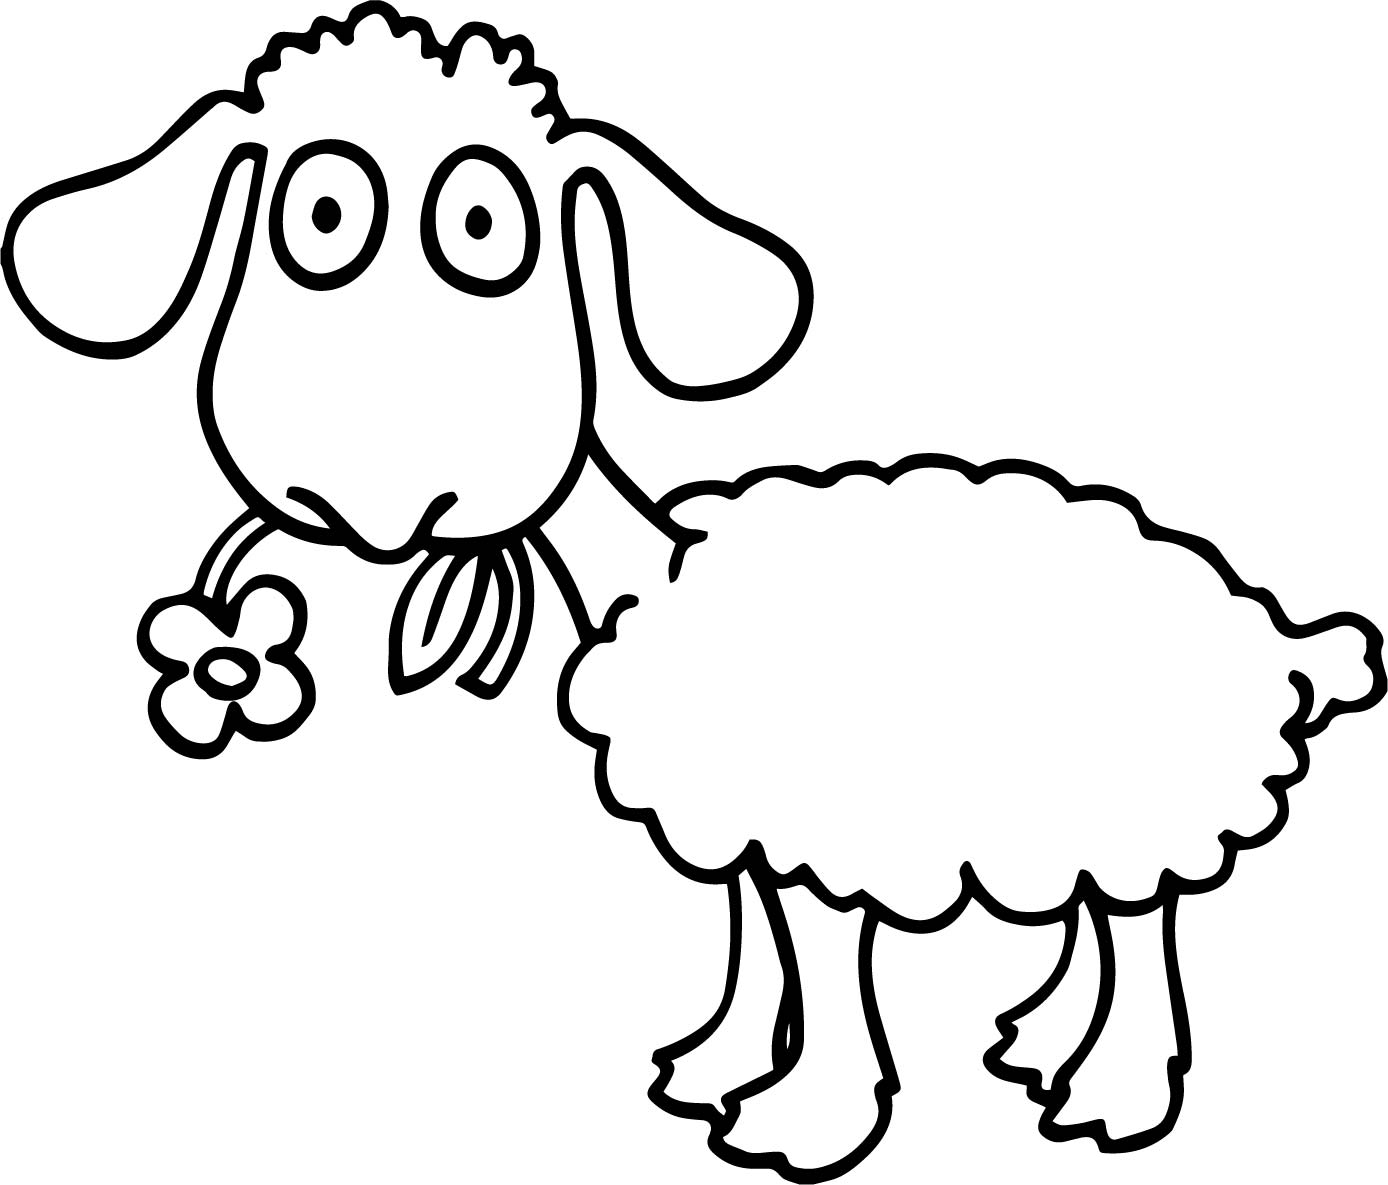 Eating Flower Sheep Coloring Page